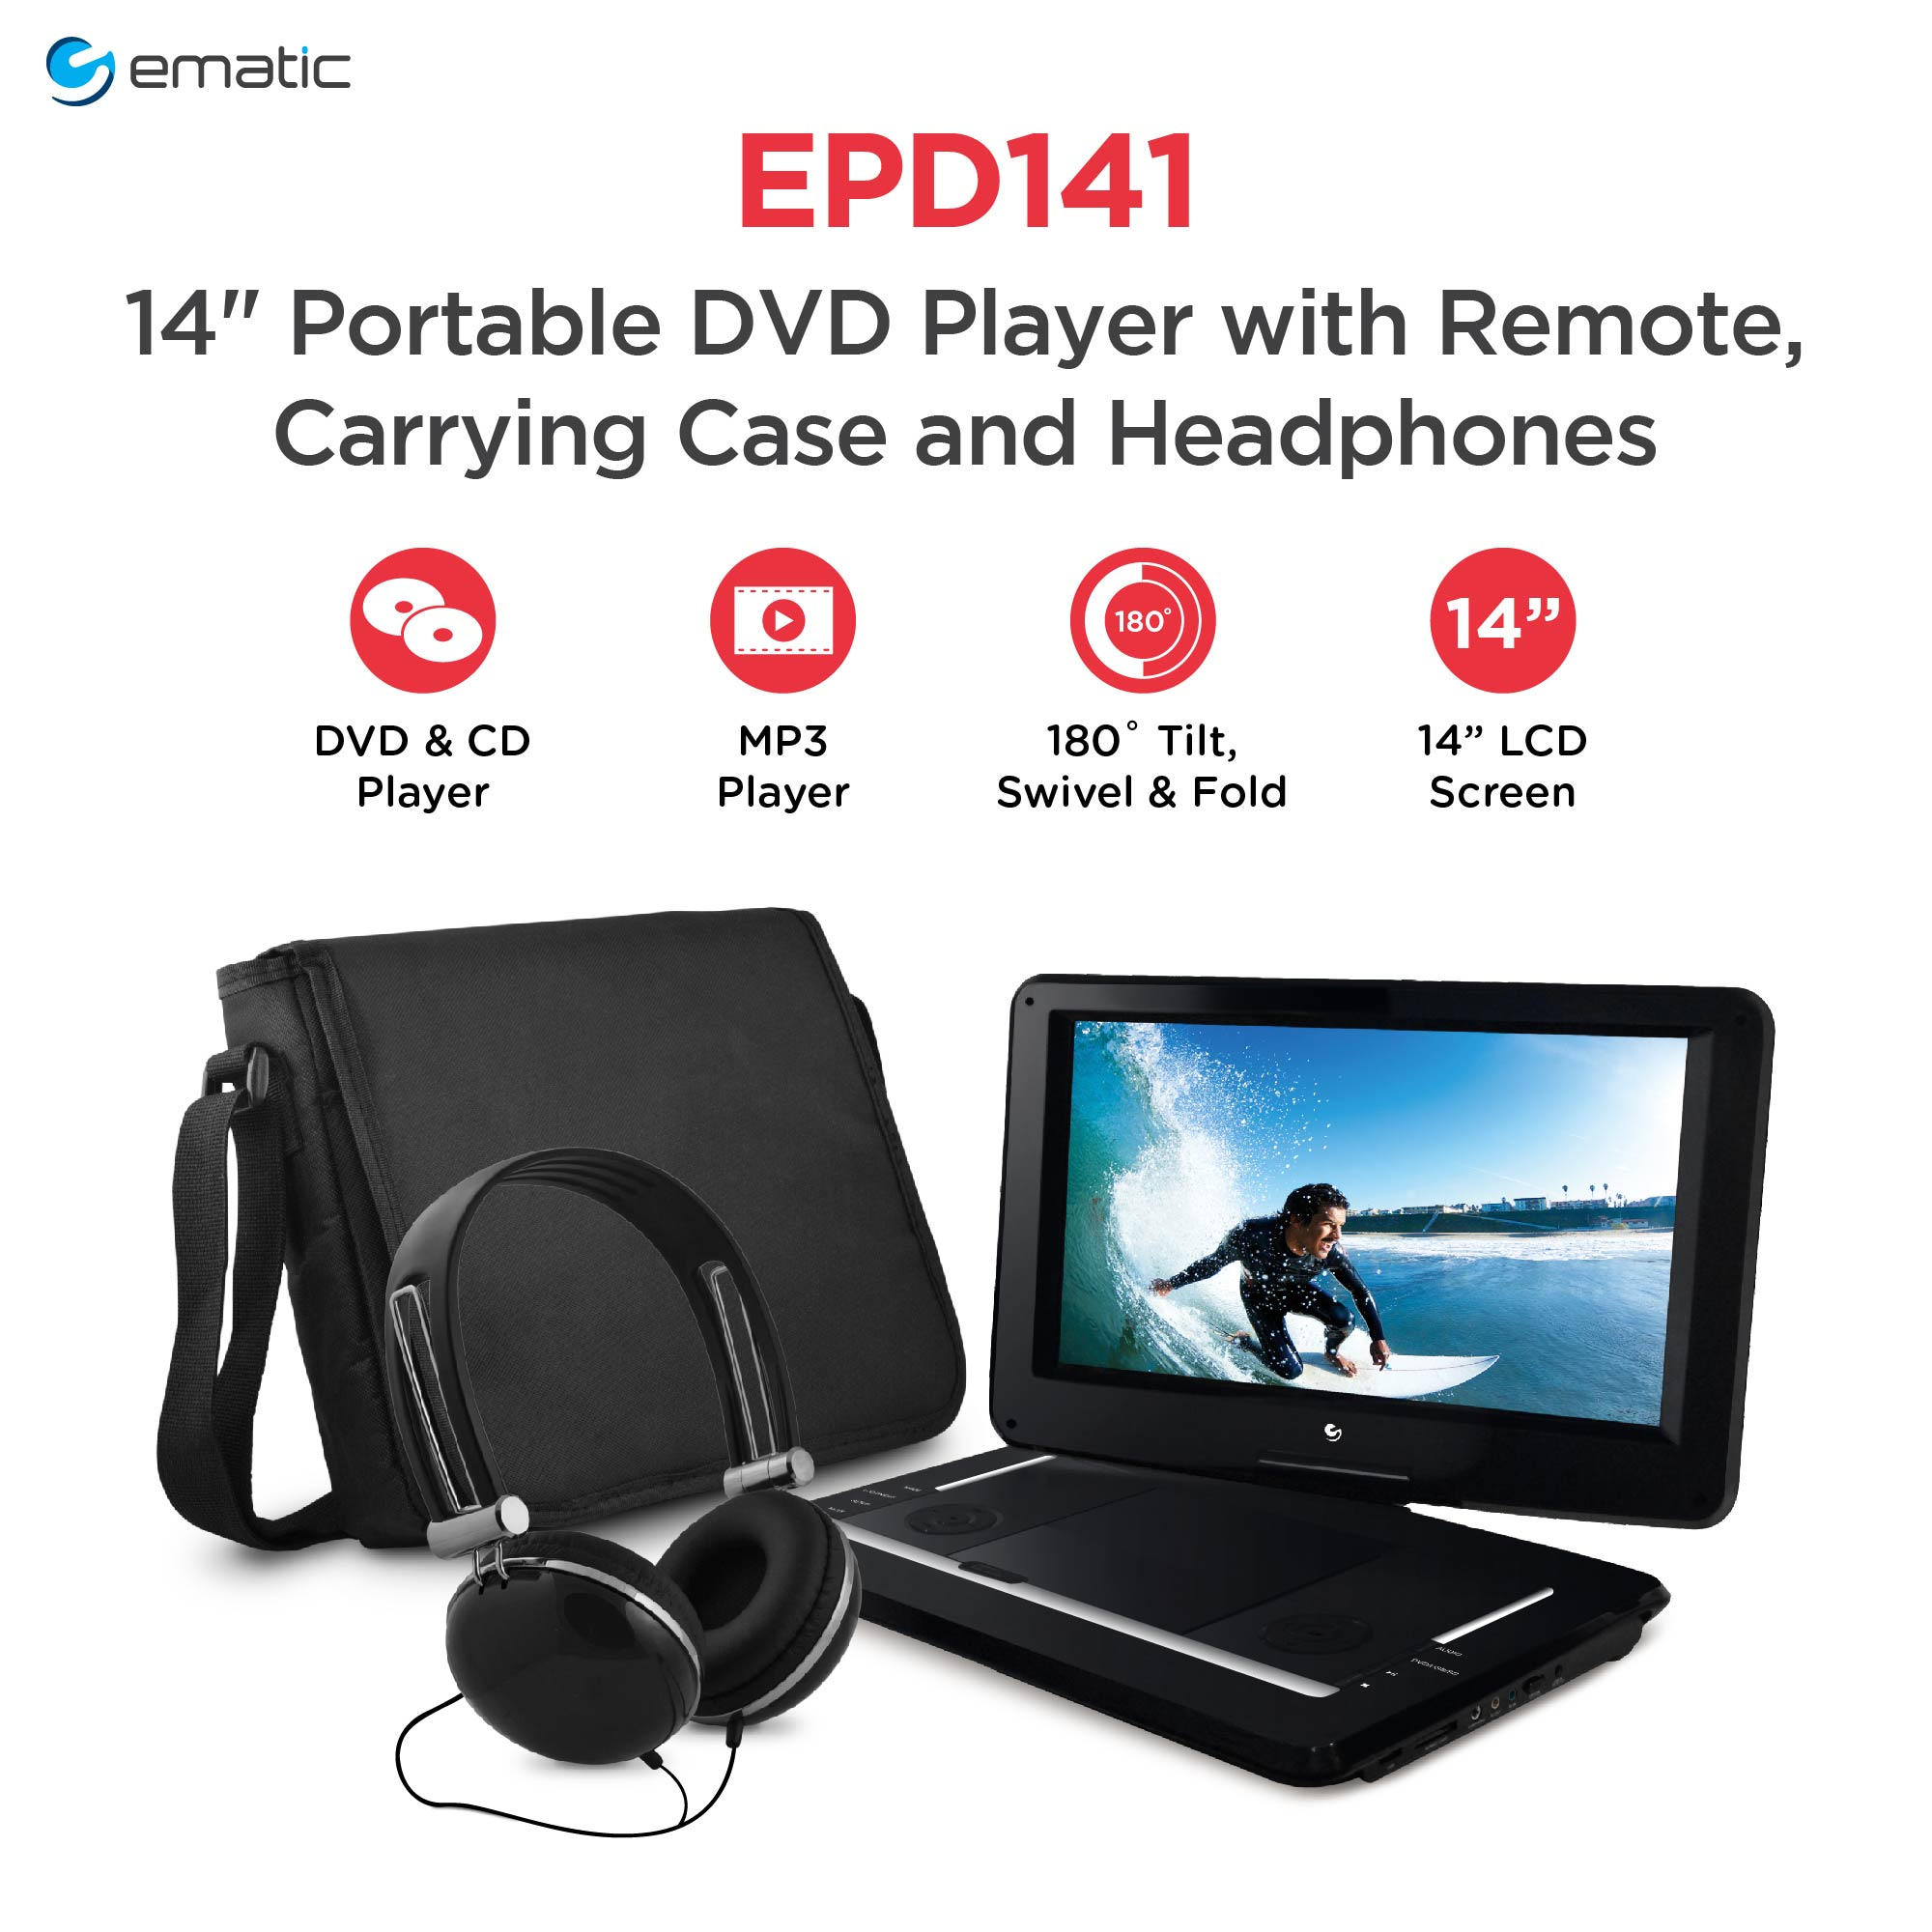 """Ematic 14"""" Portable DVD Player with Remote, Carrying Case & Headphones"""